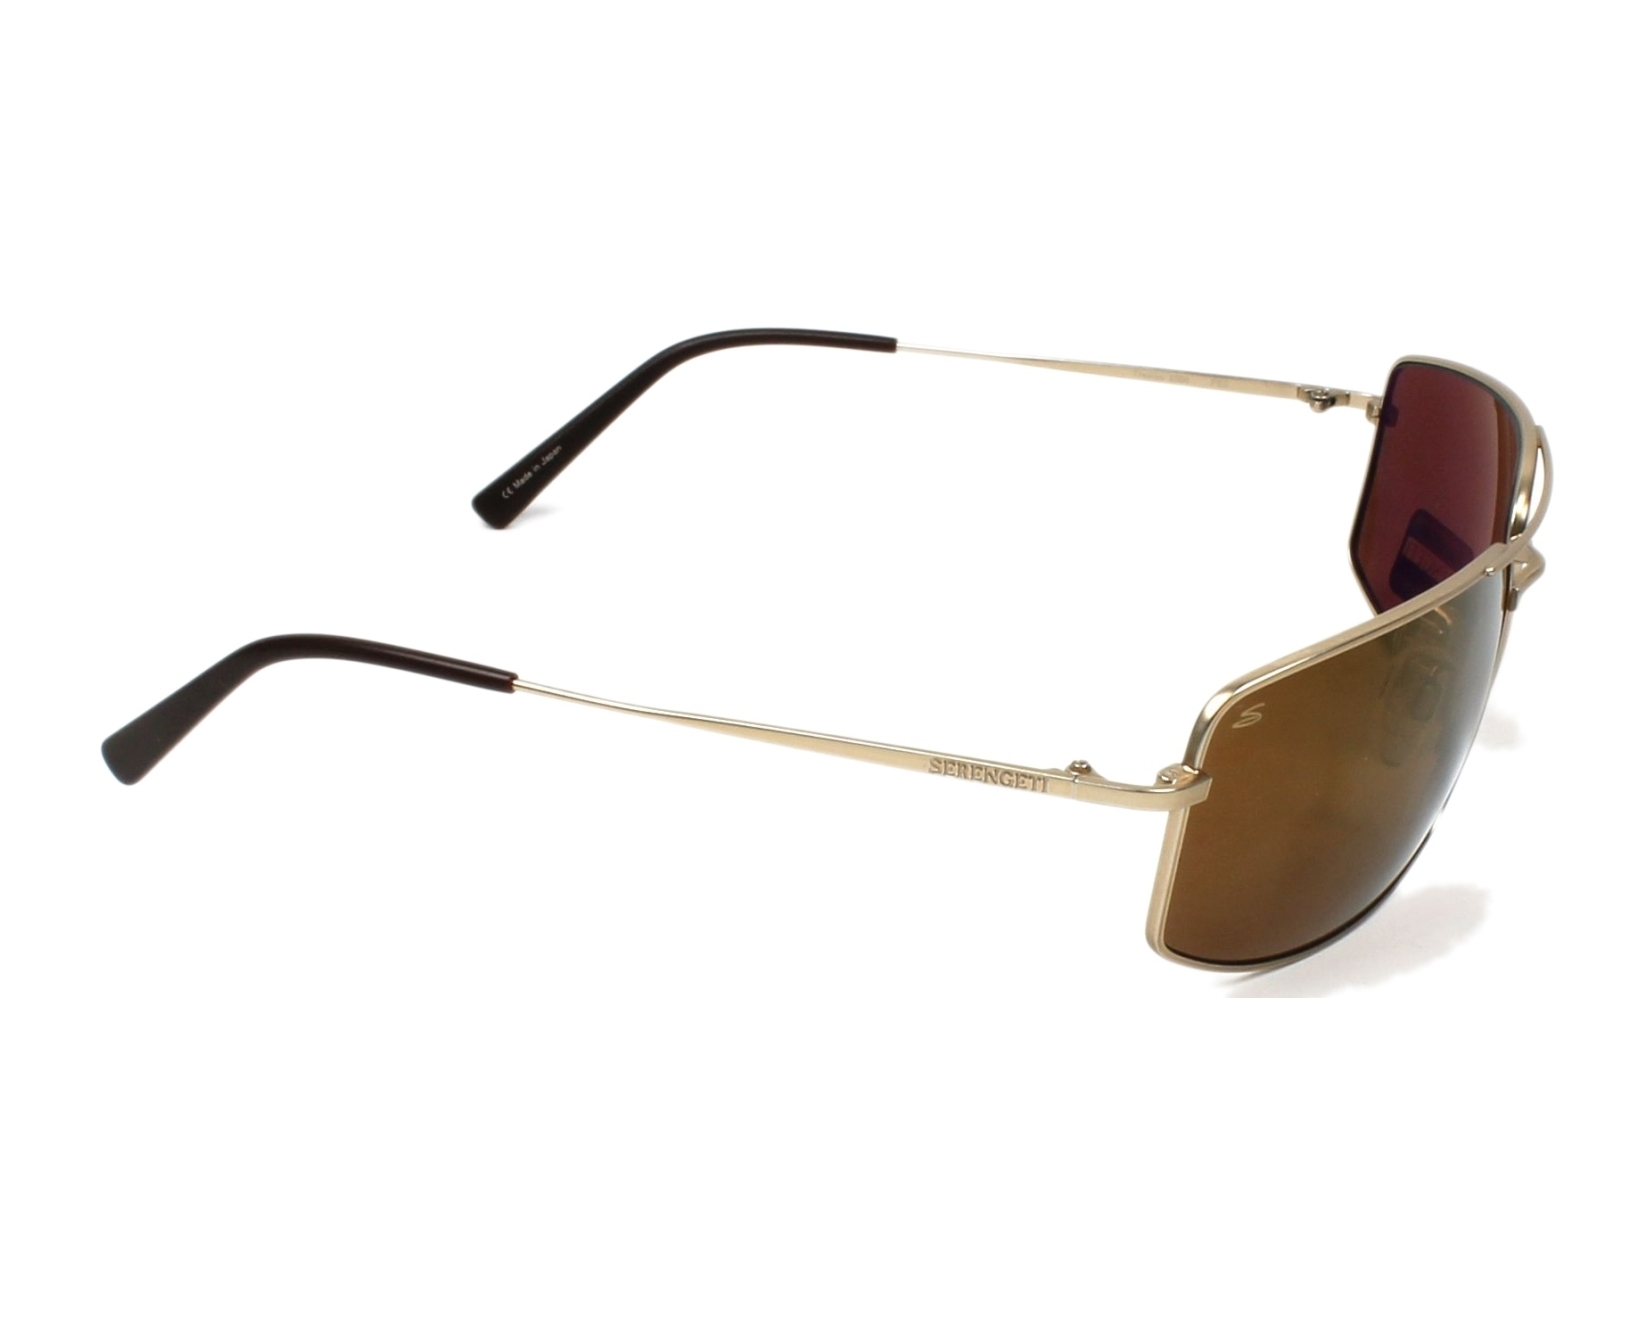 7a3a413f11 Sunglasses Serengeti TREVISO 8306 - Gold side view